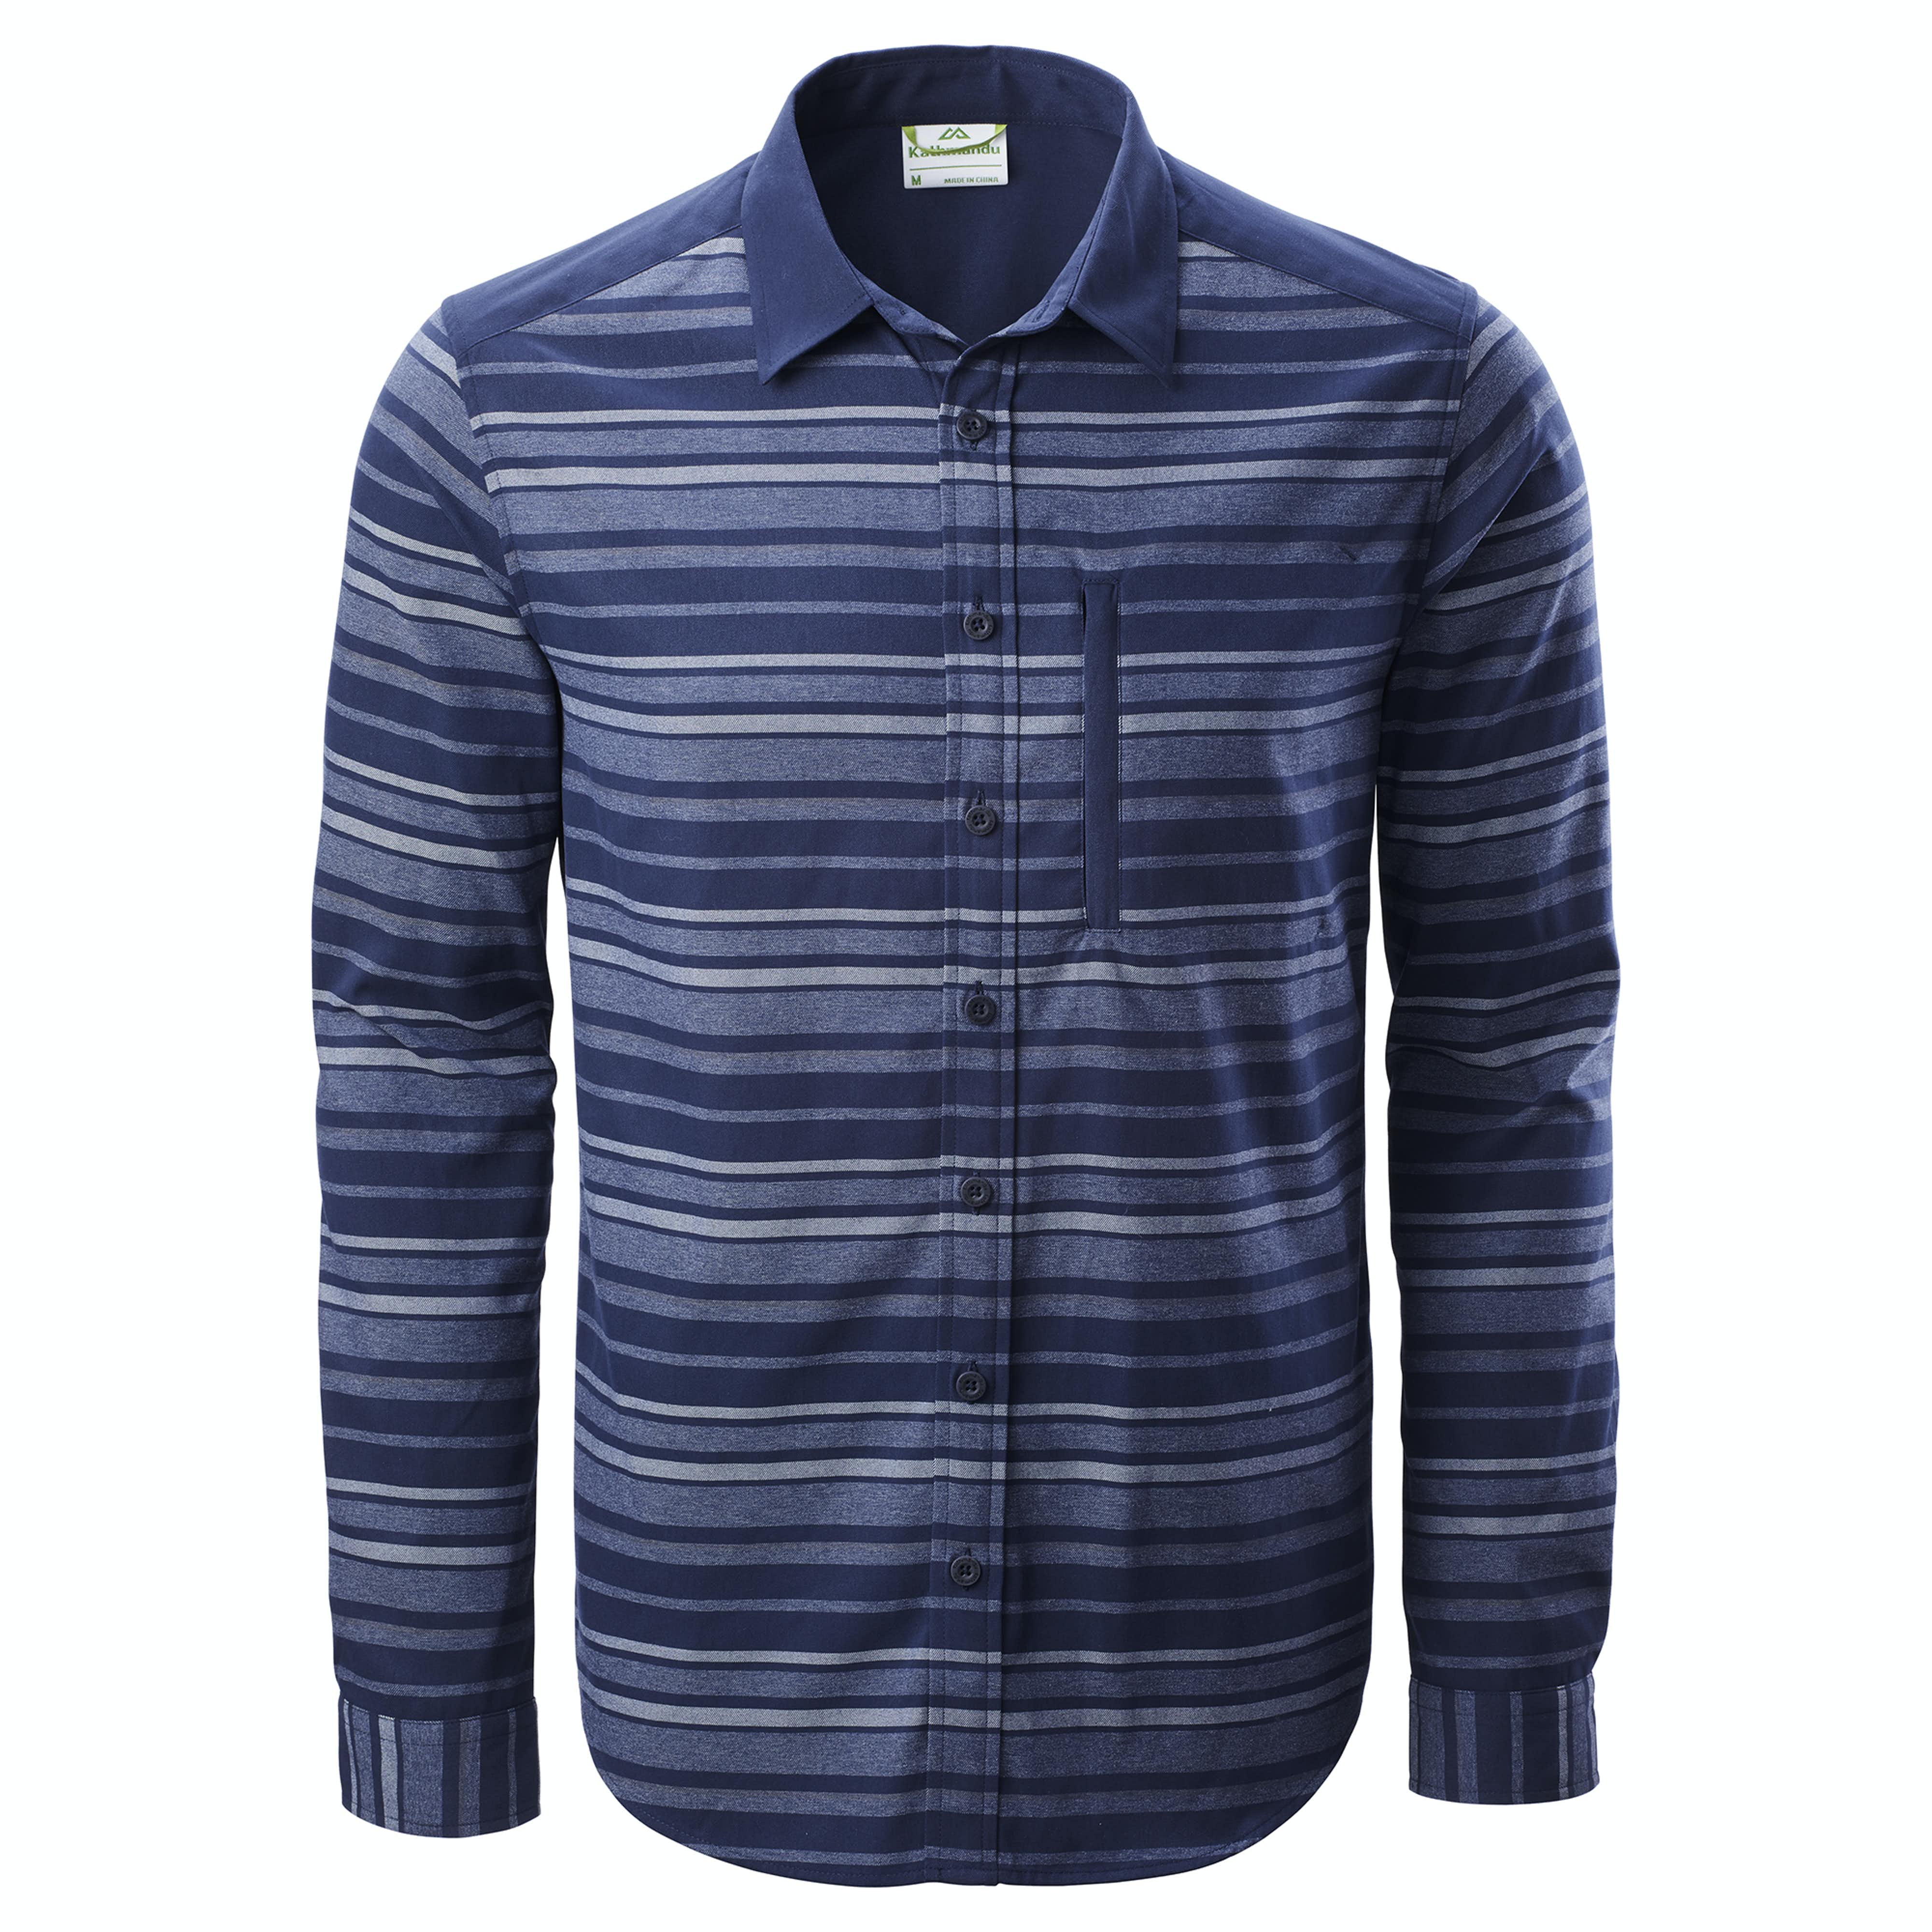 2019 clearance sale footwear shop for genuine Federate Mns L/S Shirt v4